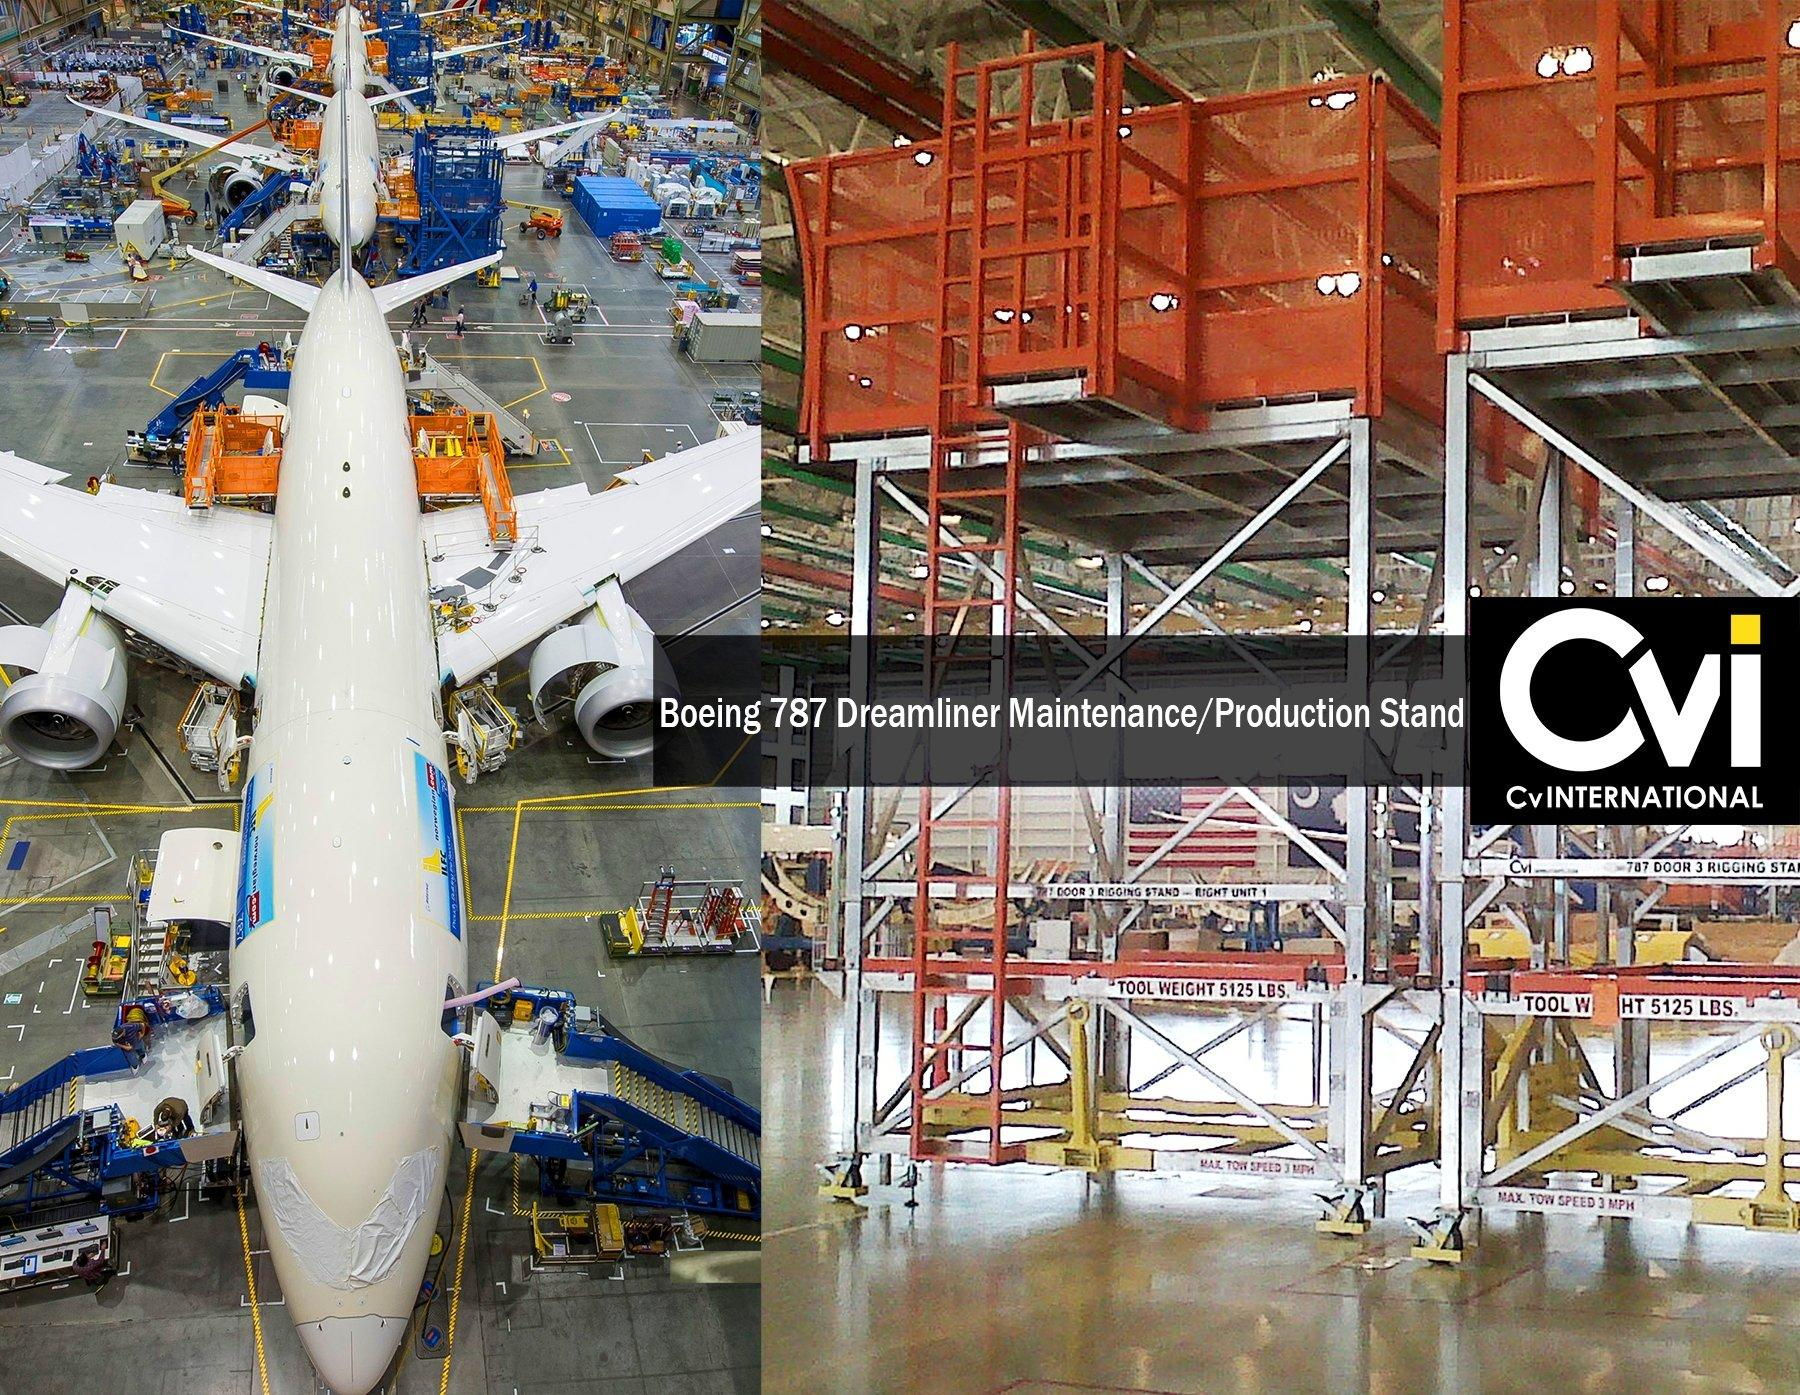 cv international releases boeing 787 dreamliner maintenance  production stand to charleston  sc